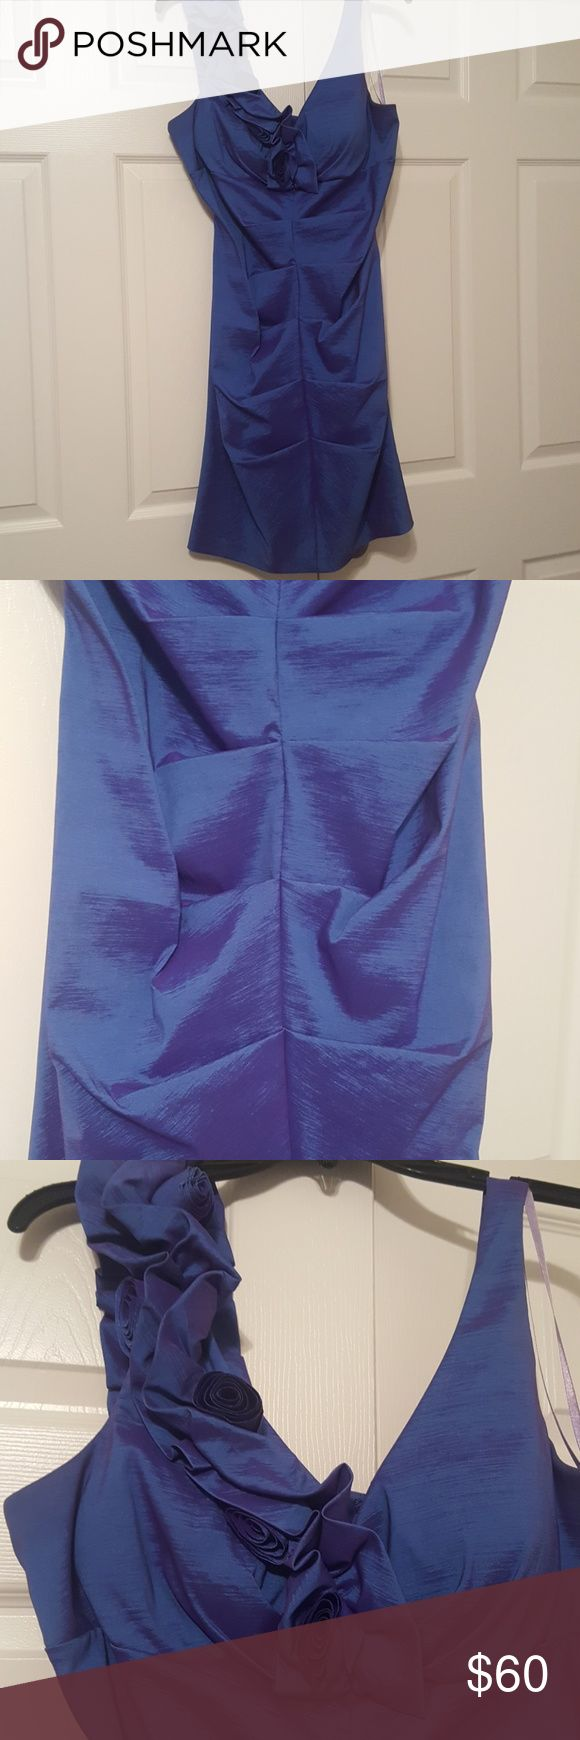 Metallic Purple dress Cute festive dress. Perfect for weddings or family events. Super comfy and very stretchy. One shoulder detail and very form fitting. Size 16 but fits any body type from size 12-14. Dresses Wedding